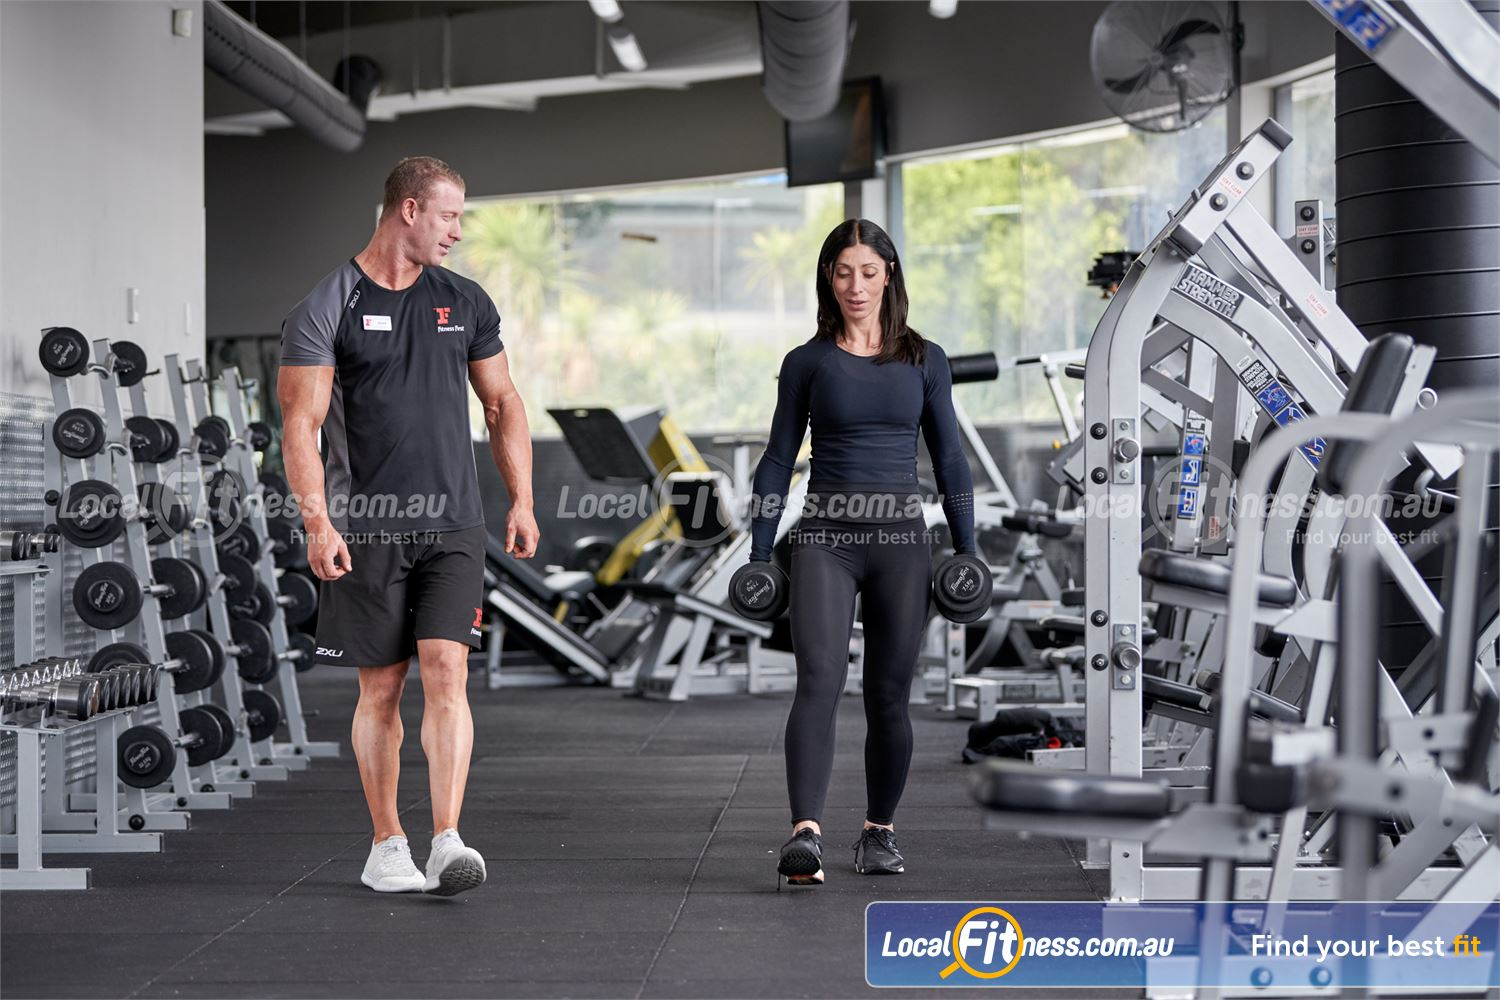 Fitness First Macquarie Near East Ryde Fitness First Macquarie includes a fully equipped free-weights training area.